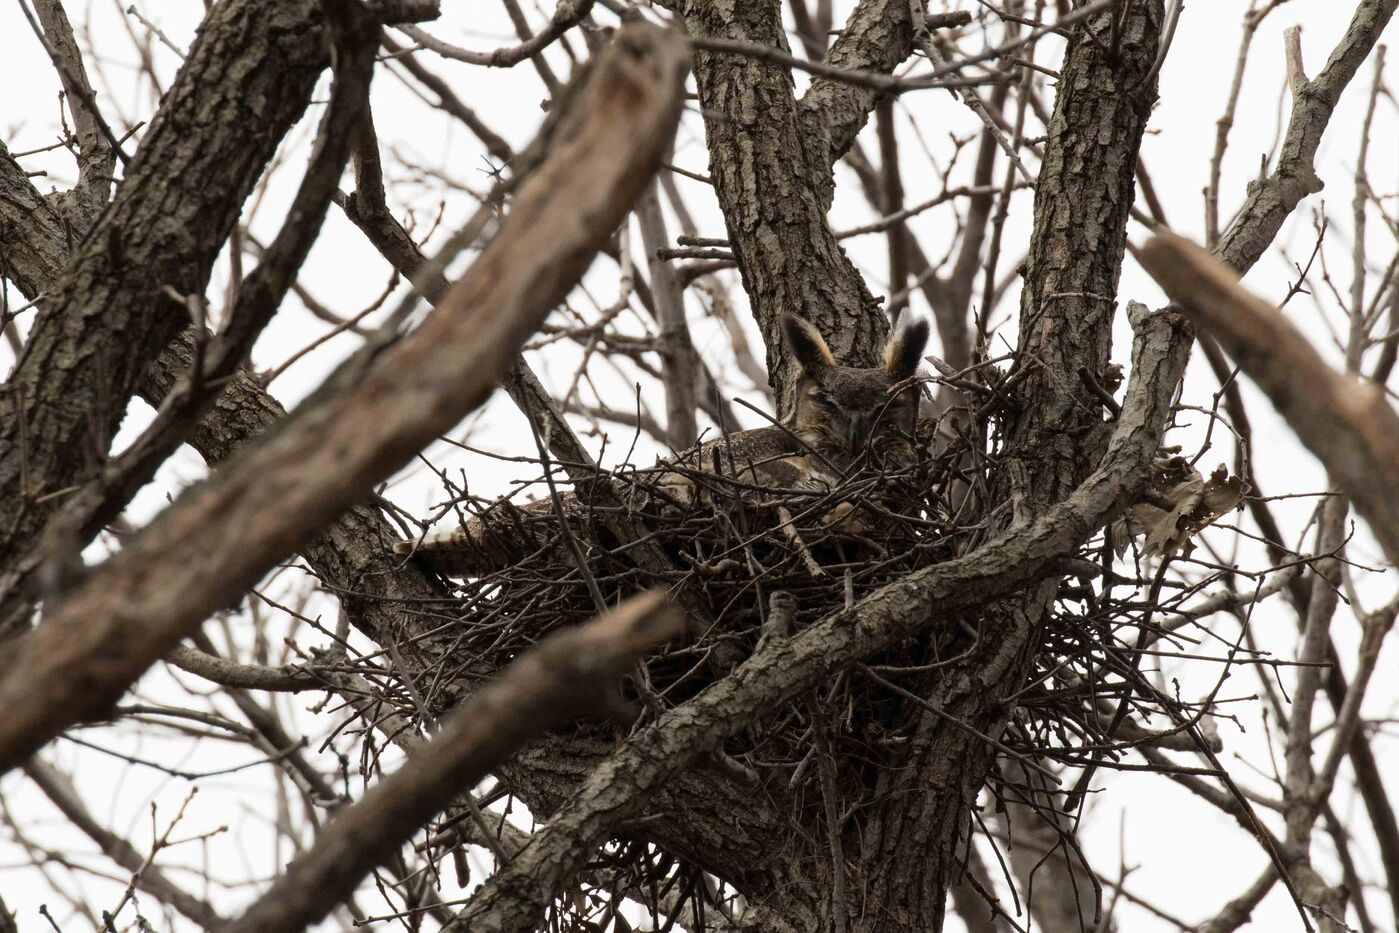 A great horned owl sits in a nest.